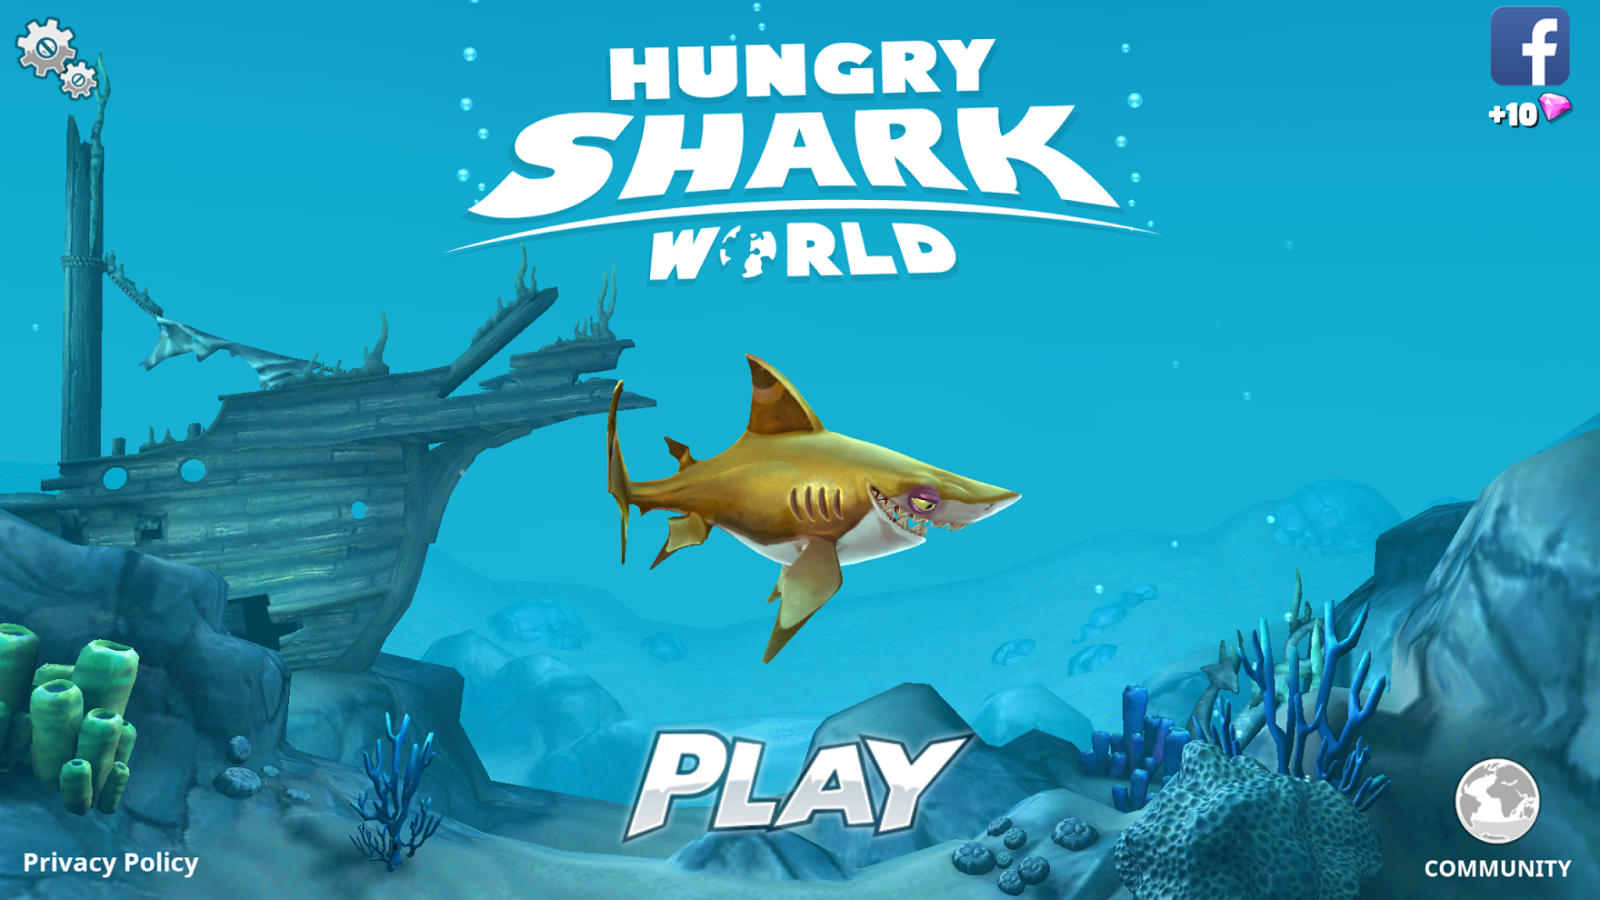 iphone ipad ios apps and games daily iphone game today iphone game of the day is hungry shark world